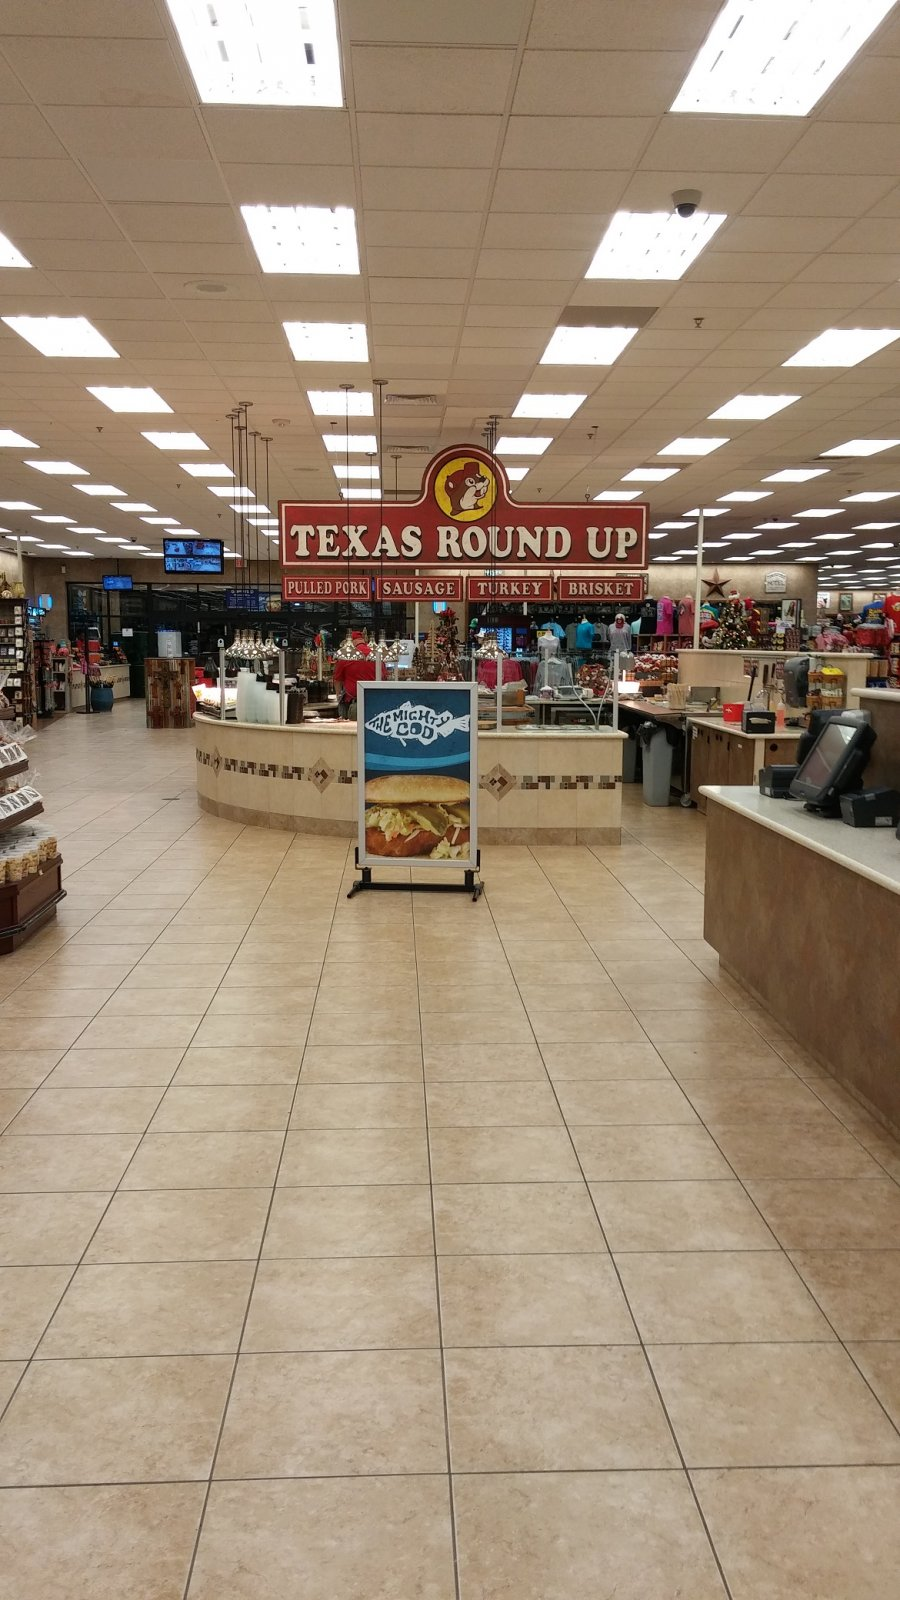 Click image for larger version  Name:BUC-EE's Shopping.jpg Views:94 Size:245.7 KB ID:252960